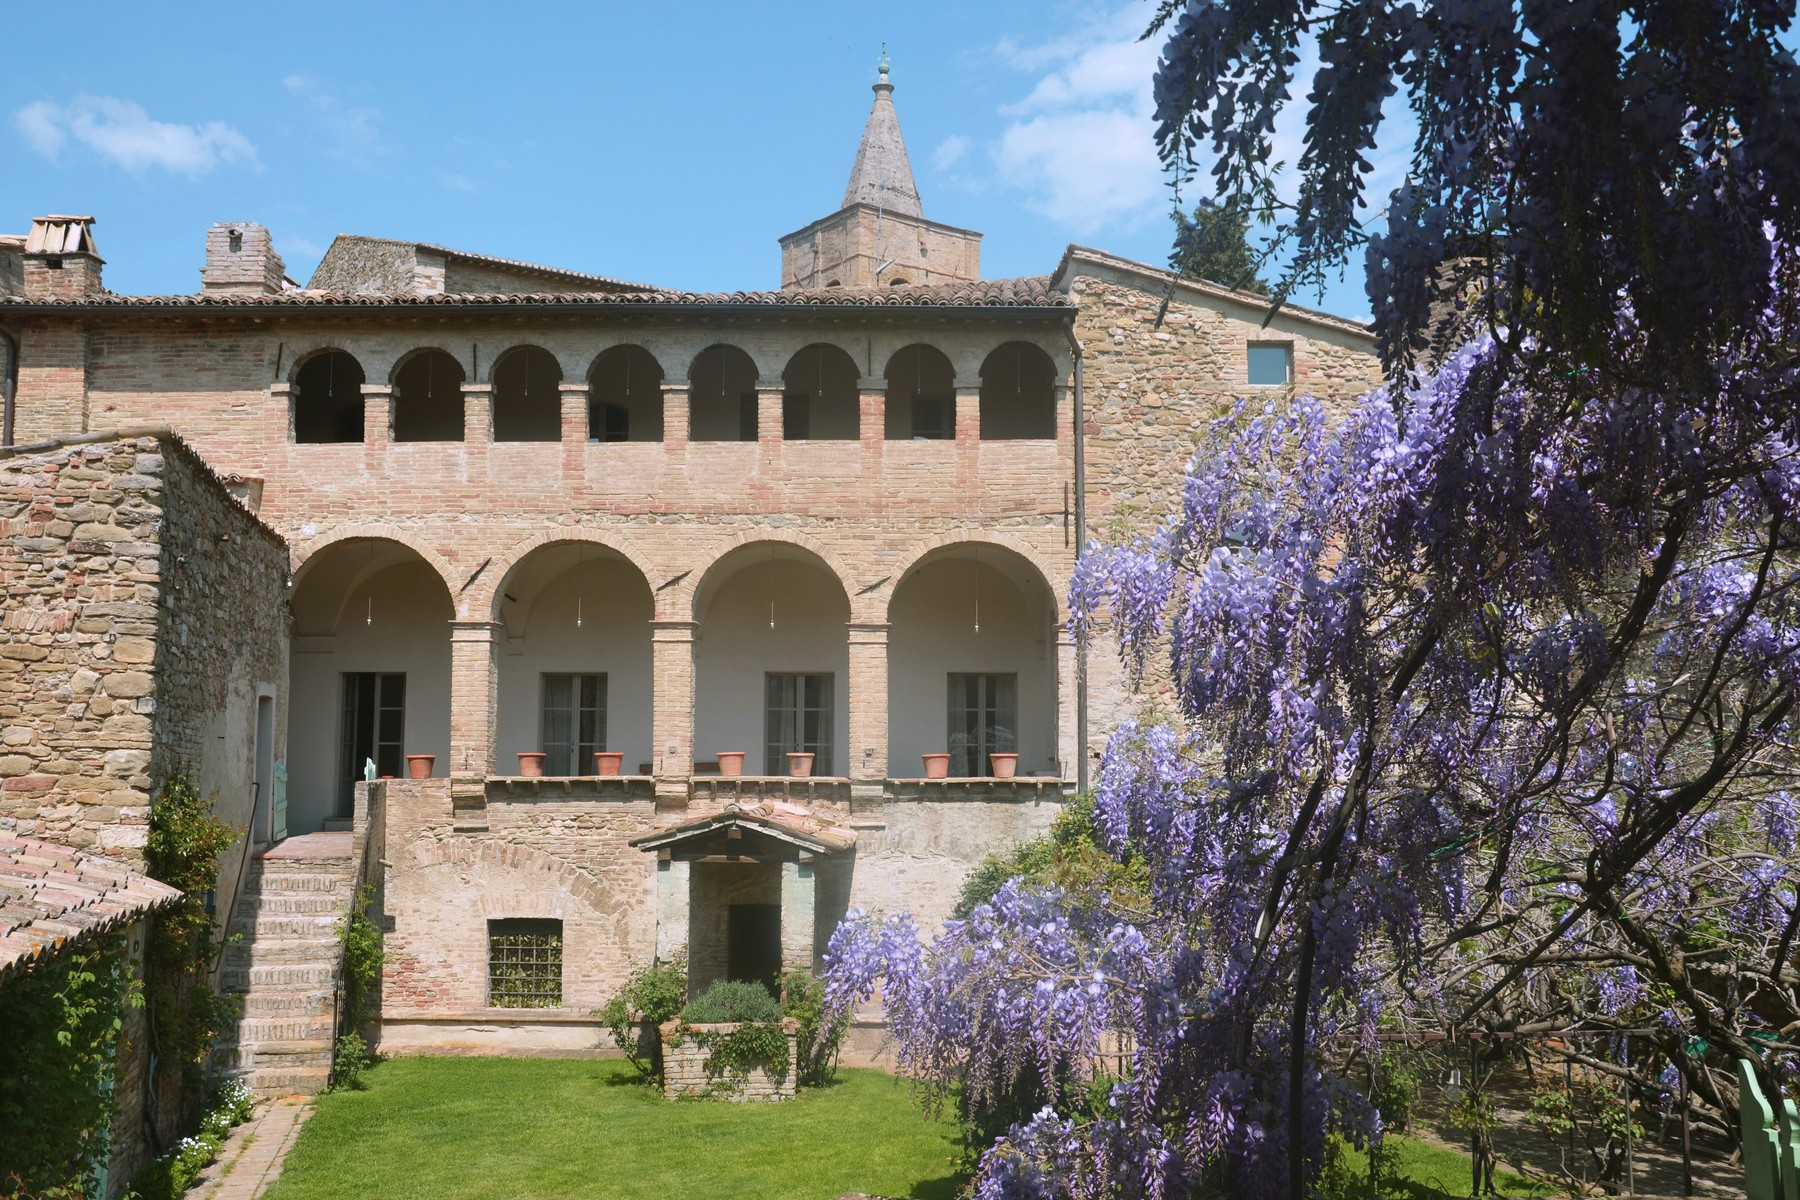 Additional photo for property listing at Amazing residence in umbrian countryside Via D. Alighieri Bevagna, Perugia 06031 Italie